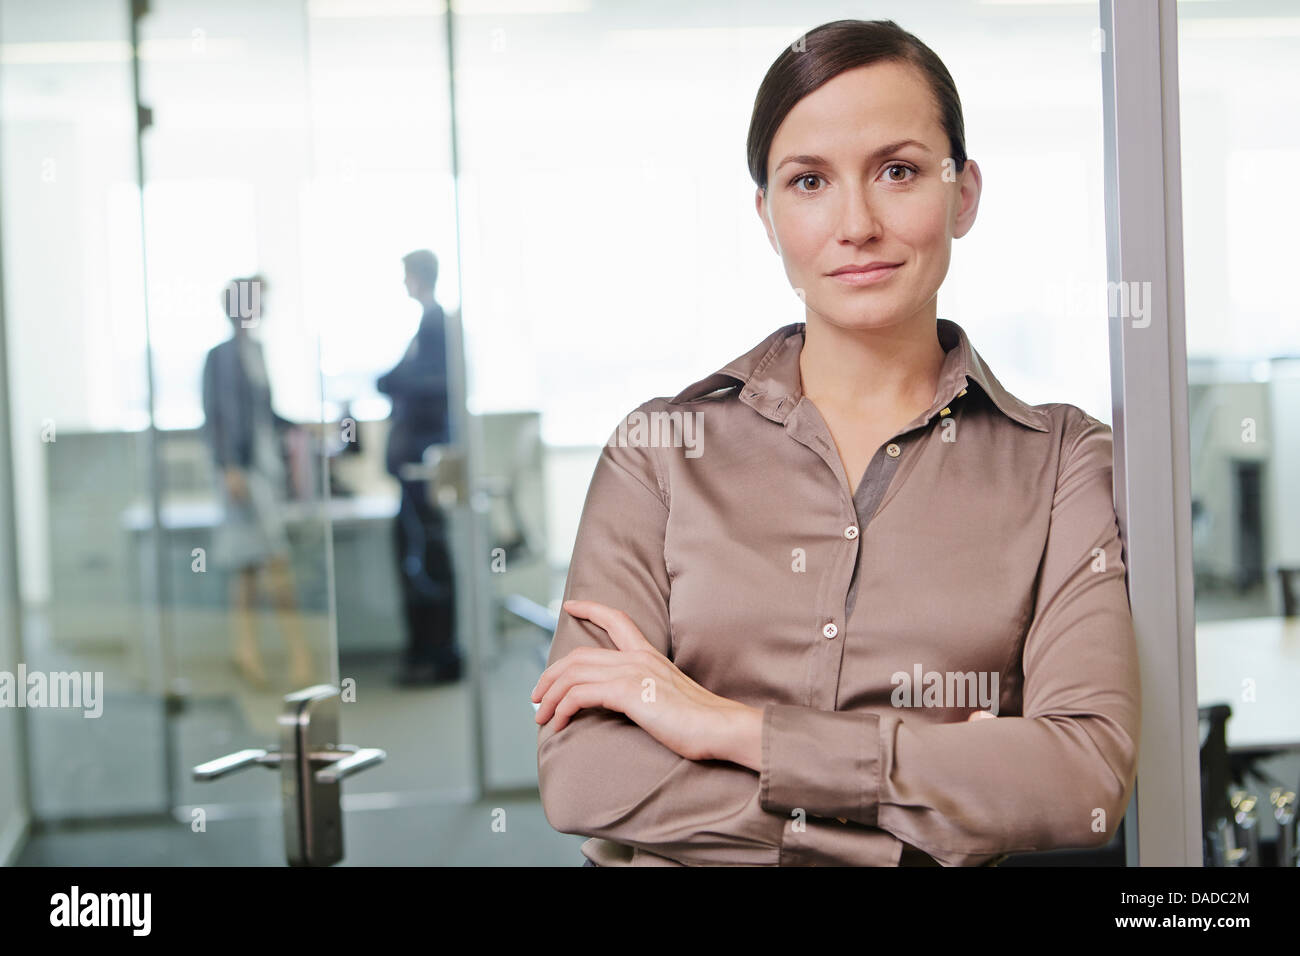 Mid adult woman standing in office with arms crossed - Stock Image